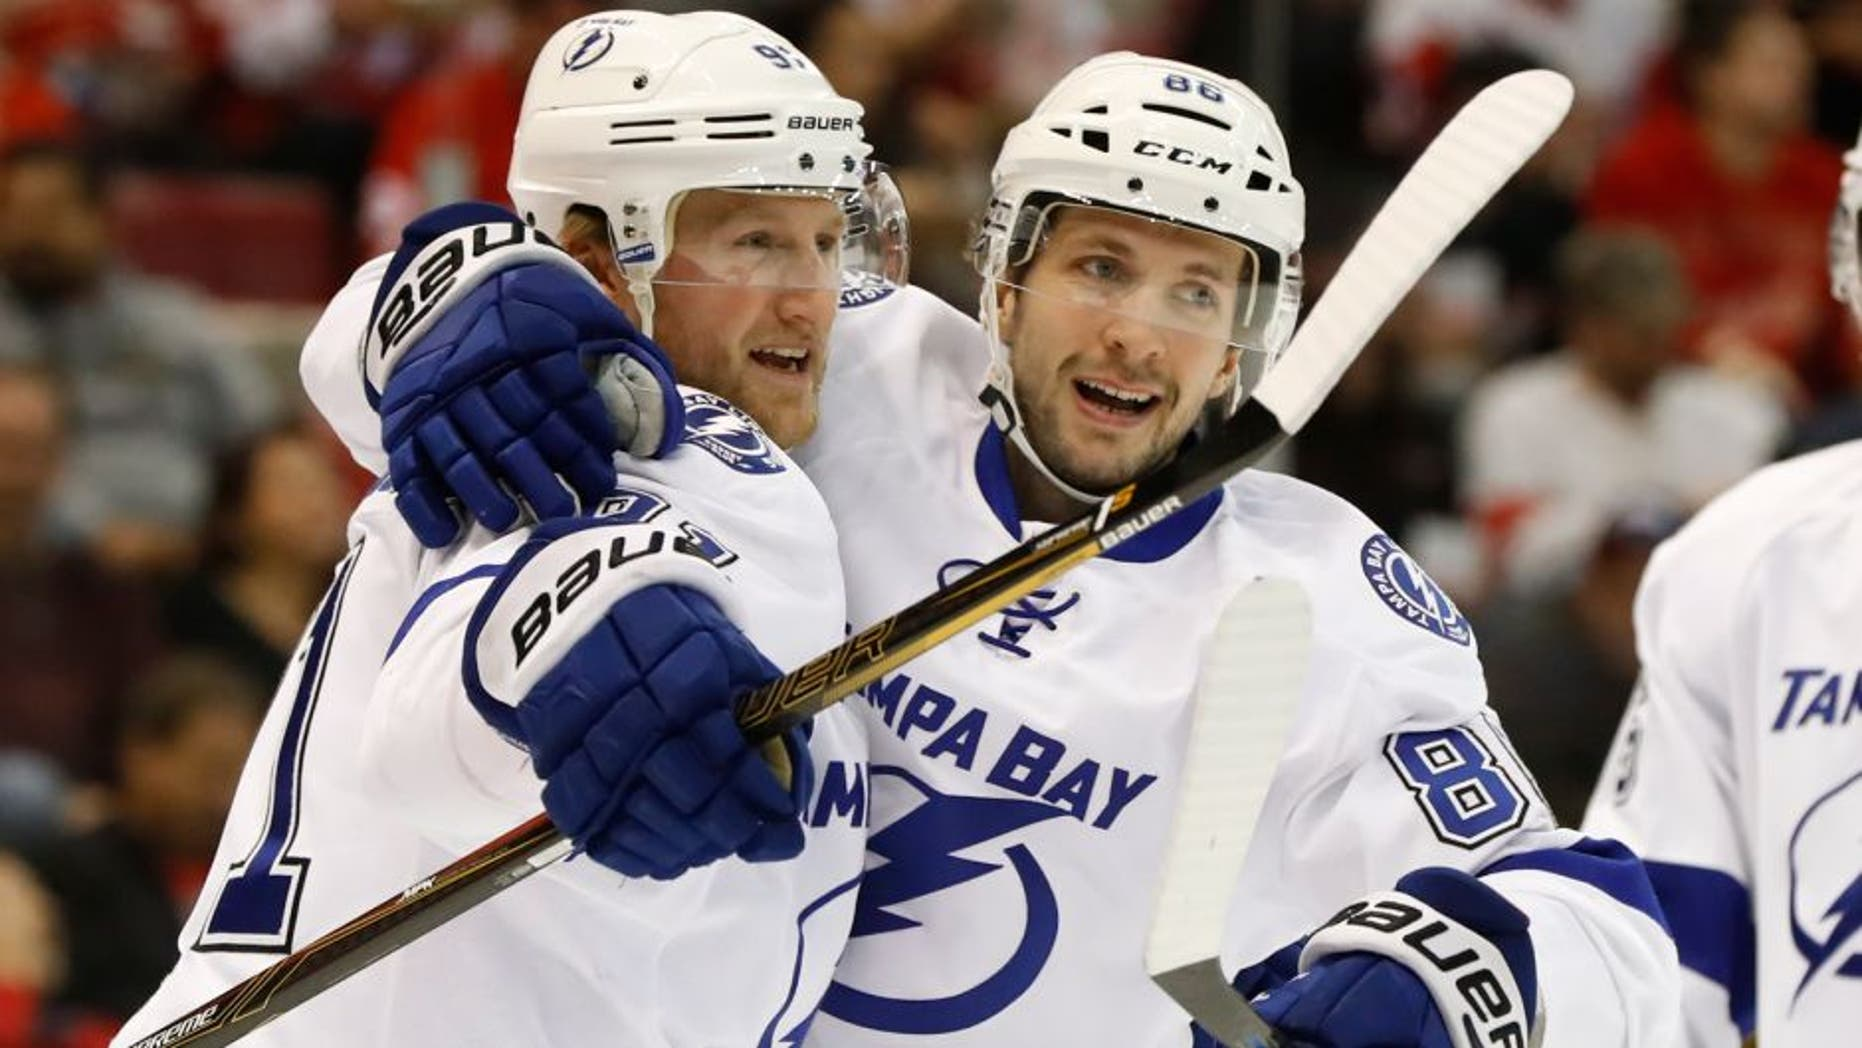 Tampa Bay Lightning center Steven Stamkos, left, celebrates his goal against the Detroit Red Wings with Nikita Kucherov in the first period of an NHL hockey game Tuesday, Nov. 15, 2016 in Detroit. (AP Photo/Paul Sancya)